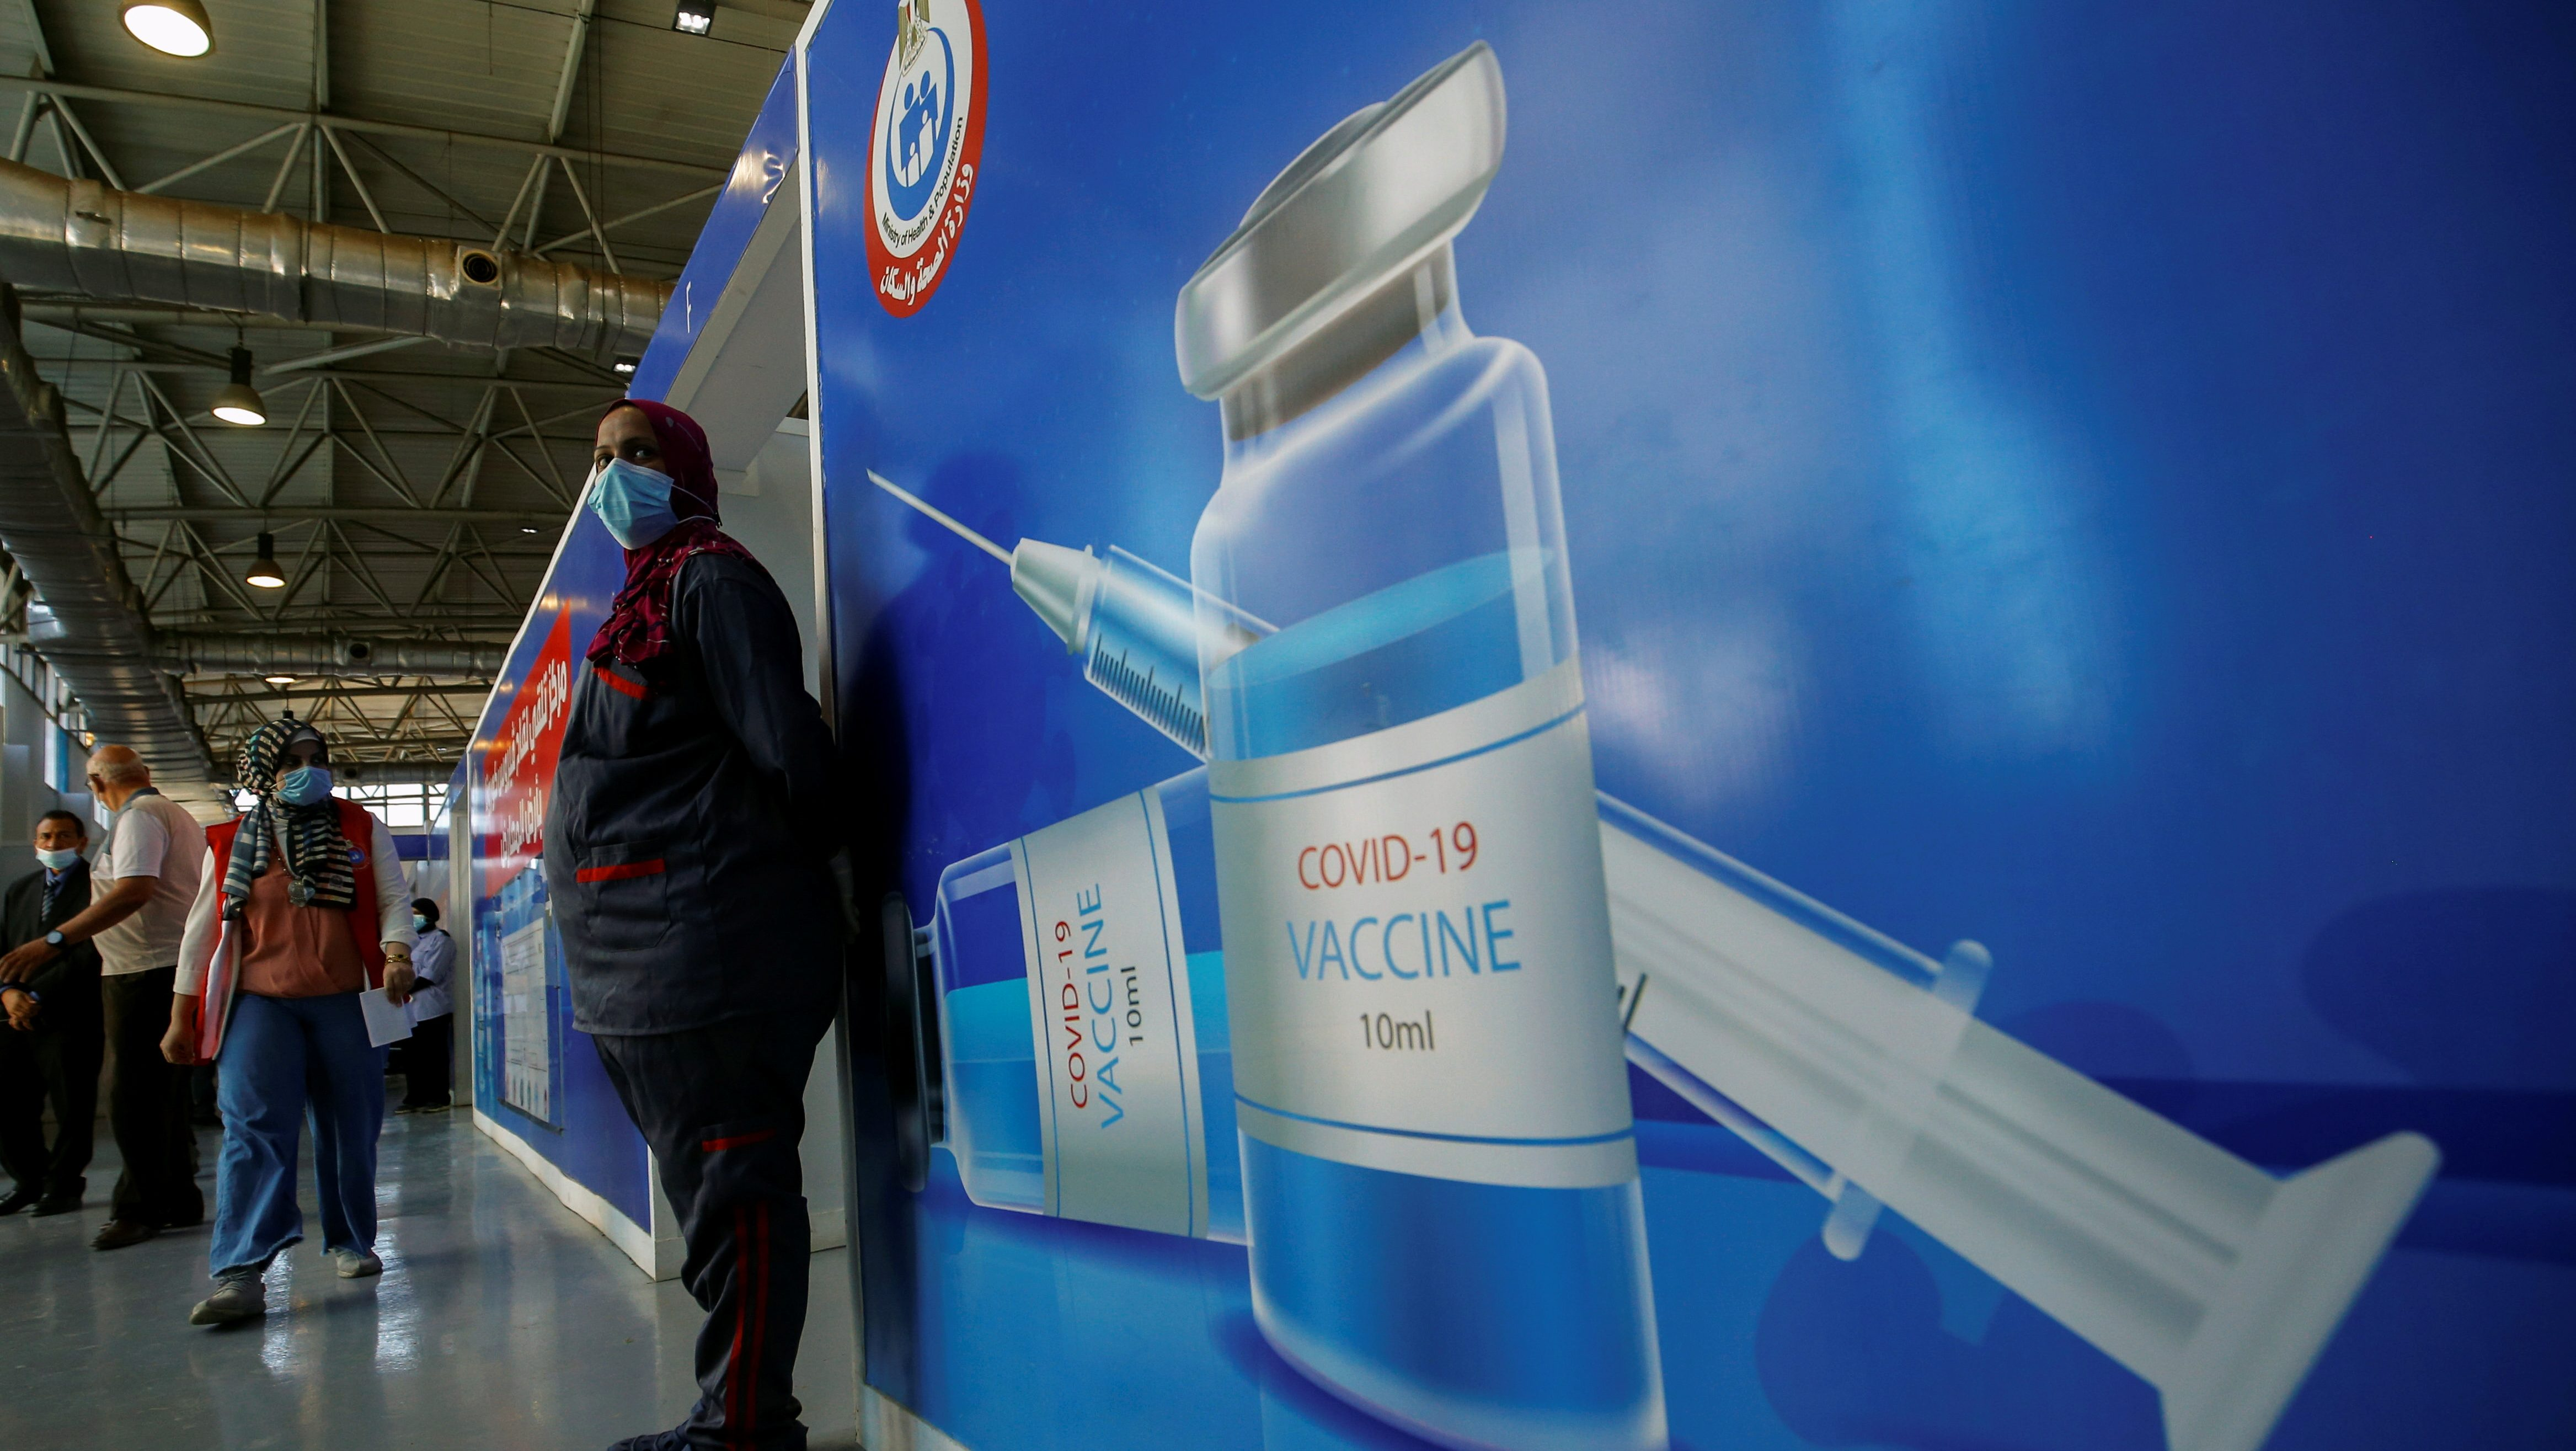 People wait to receive a shot of the COVID-19 vaccine at a mass immunization venue inside Cairo's International Exhibition Center in Cairo on June 2.